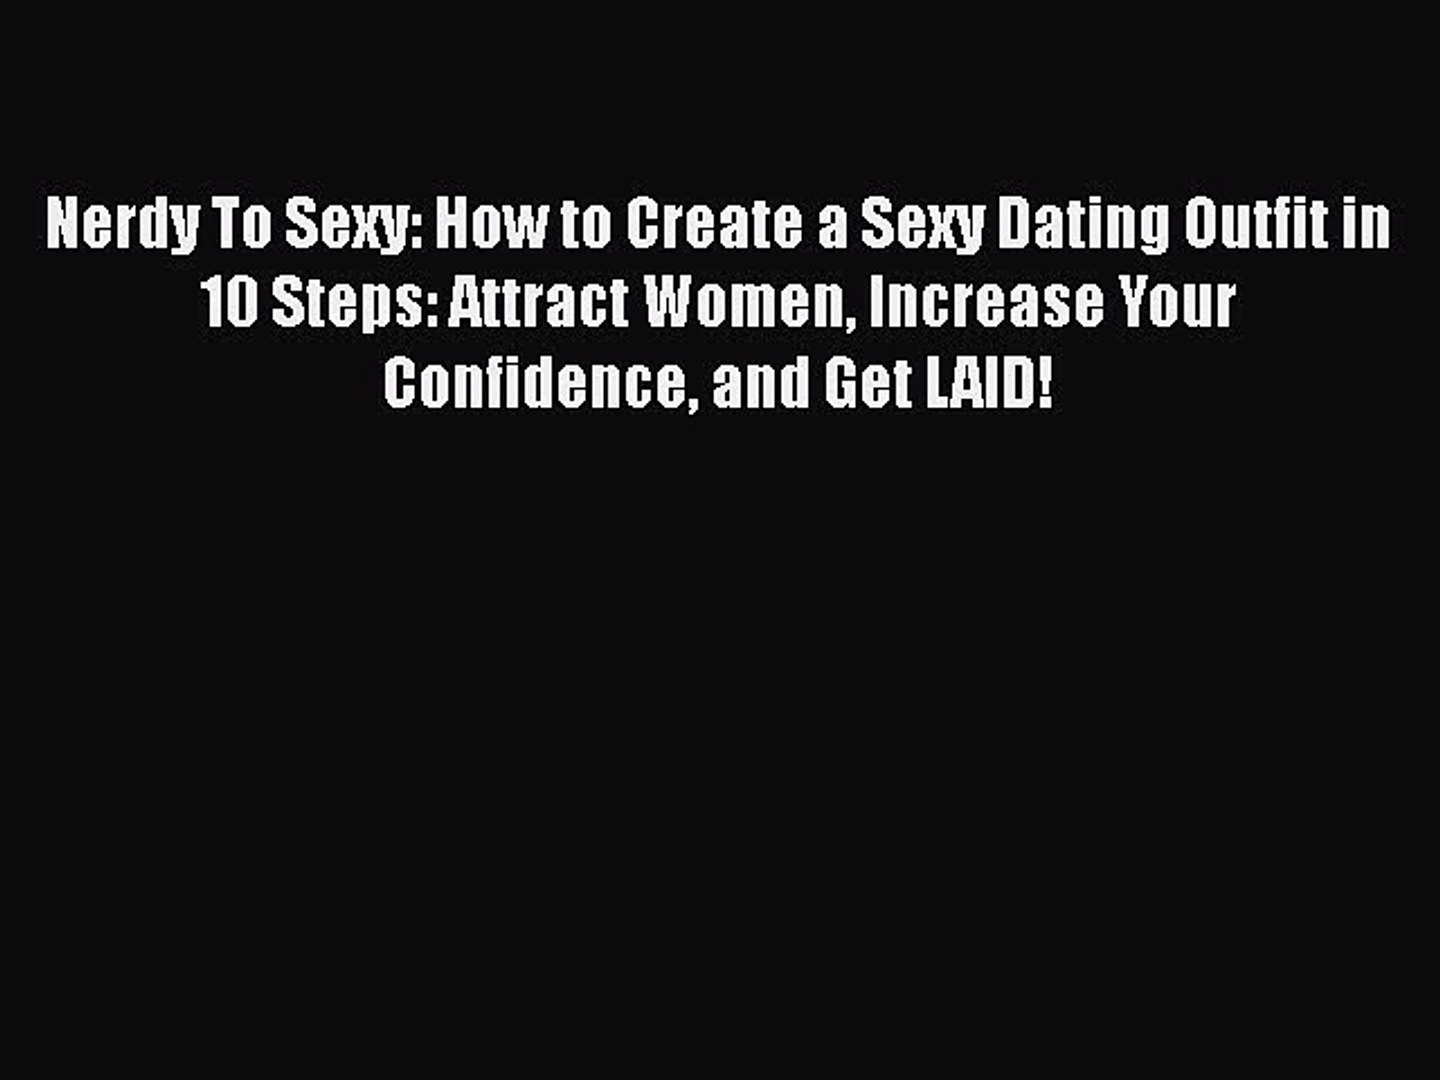 [Read Book] Nerdy To Sexy: How to Create a Sexy Dating Outfit in 10 Steps: Attract Women Increase